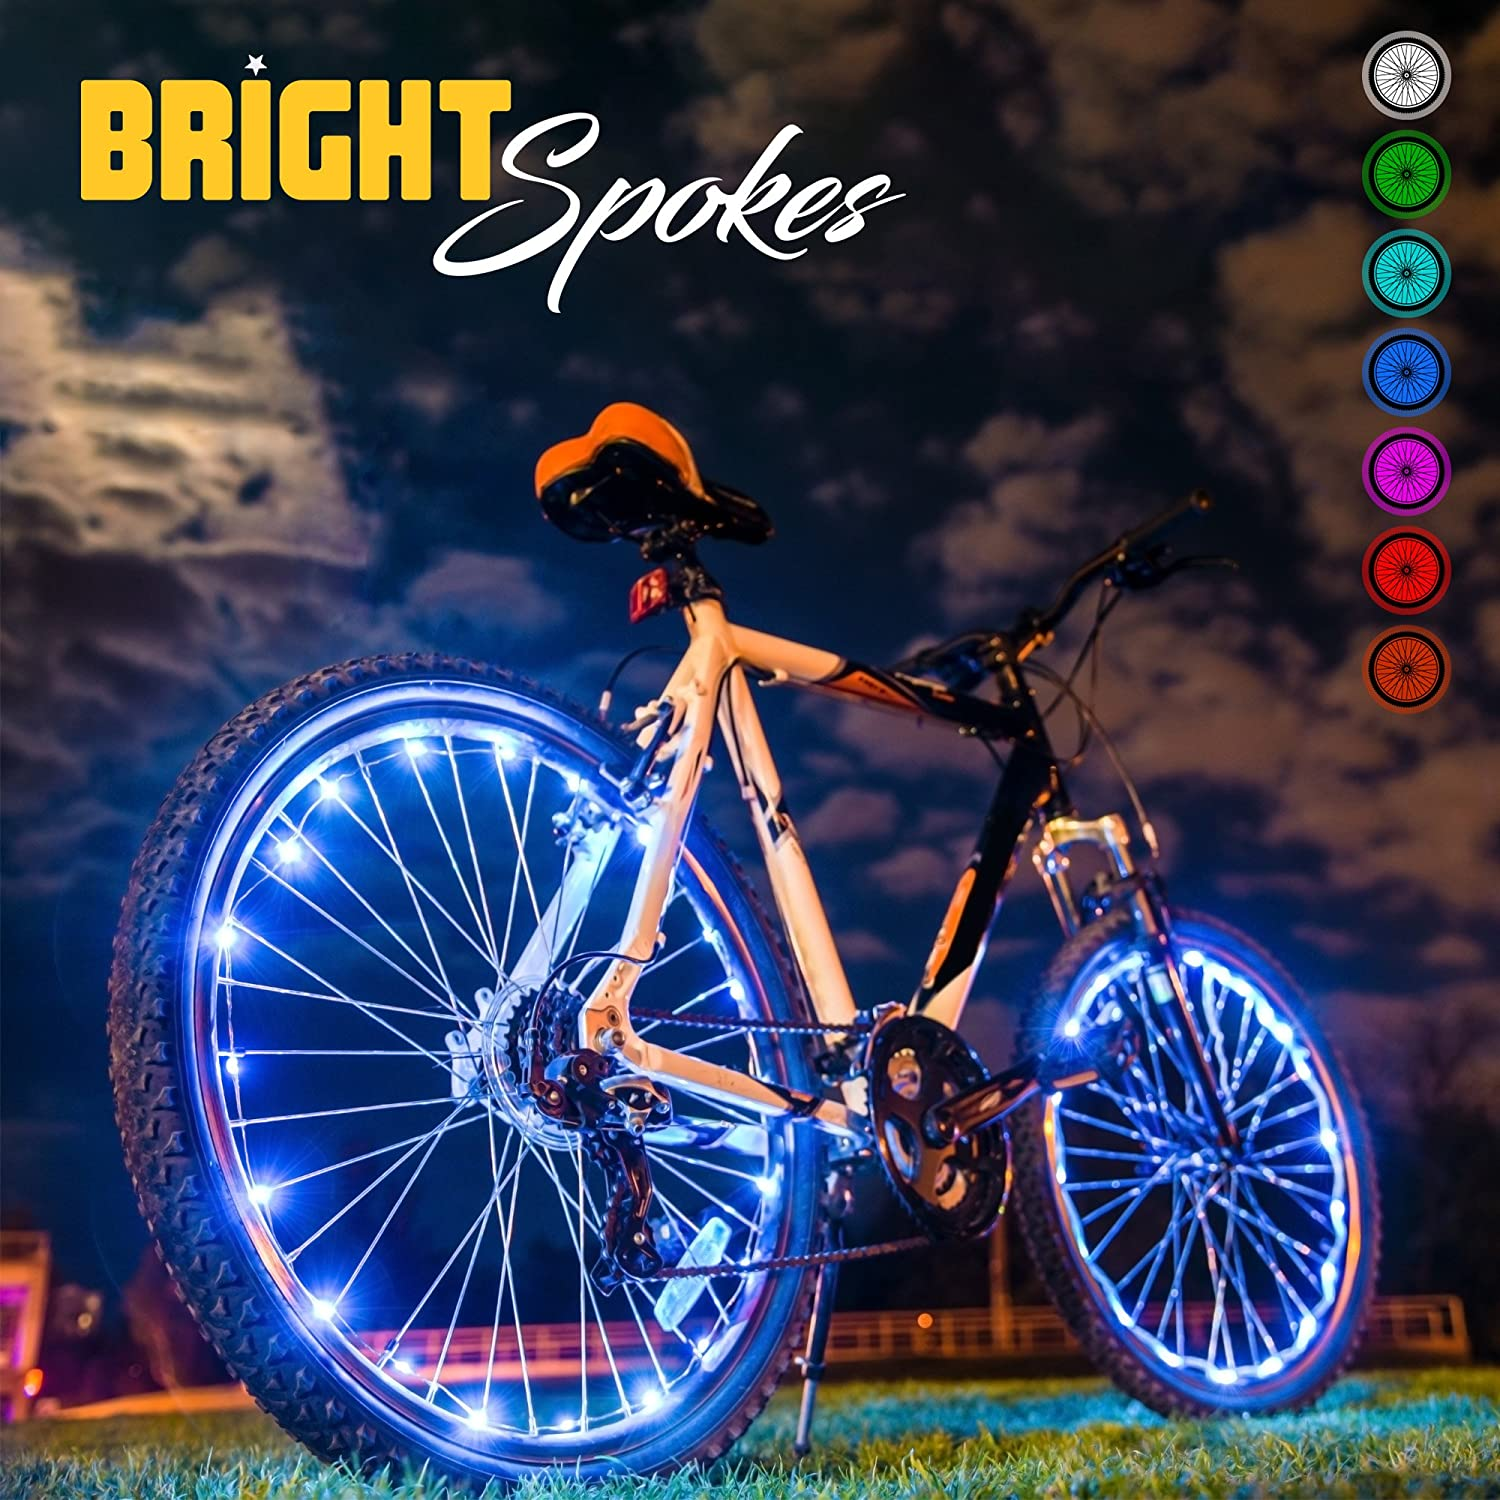 Bright Spokes Premium LED Bike Wheel Lights – 7 Colors in 1 – USB Rechargeable Battery – Strong Silicone Tube Cover – 18 Modes – For all ages – 1 Tire